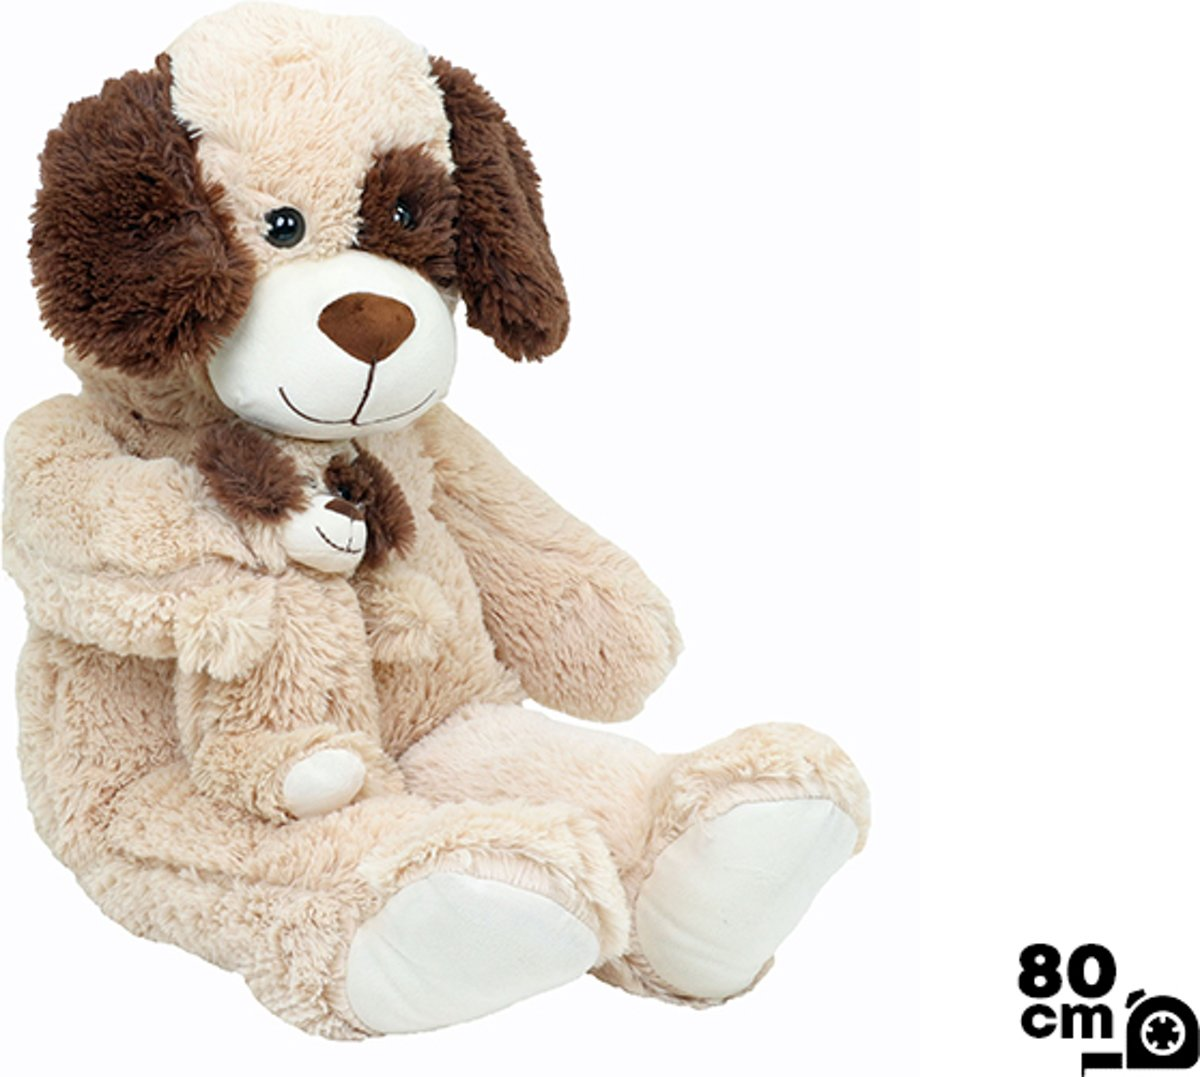 Knuffel Hond & Baby - 100% Polyester - 80 cm